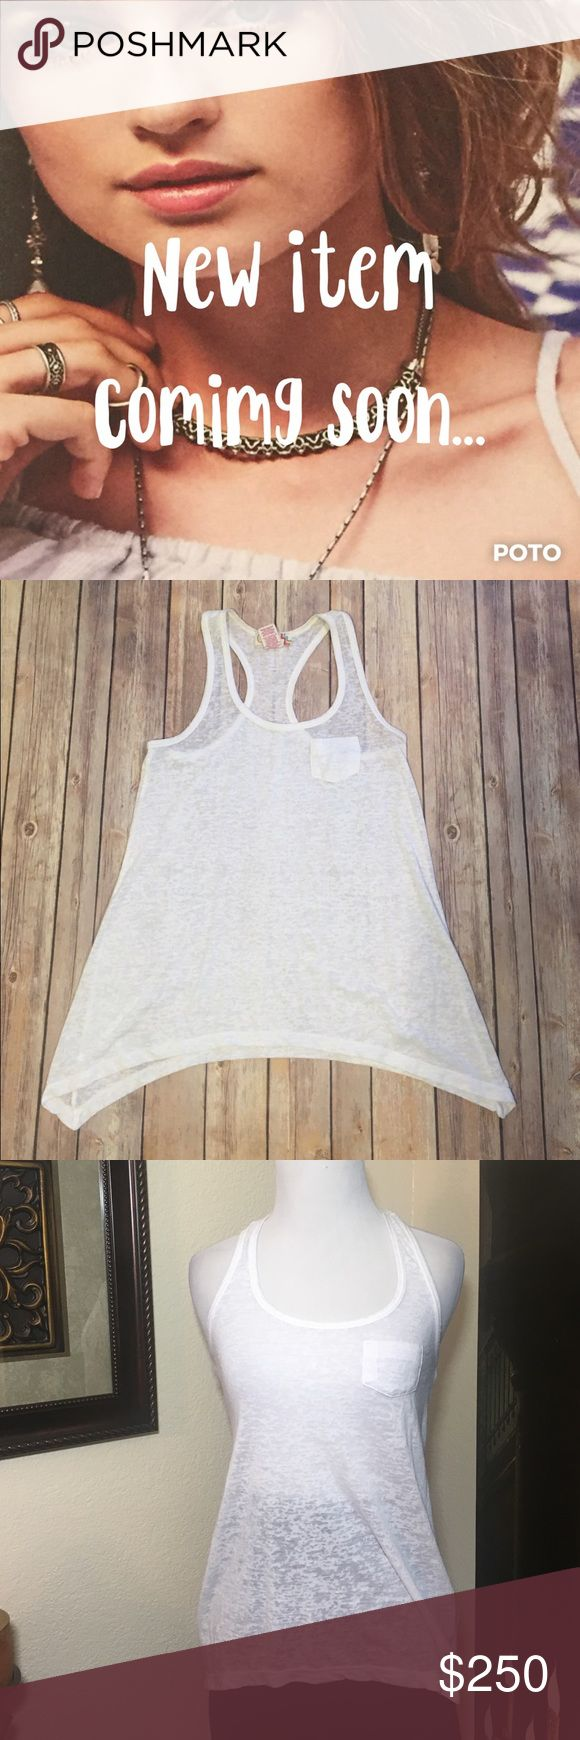 """🆕OP Burnout Racerback Tank Gently worn, OP racerback burnout tank. Size extra small. Shark bite hem with small pocket in the front loose fit and super light fabric. Approx. measurements bust 15"""", waist 15"""", length from strap to hem 25.5"""". *Note, first photo is for styling purposes only. Not exact item. Please use the offer button for all offers and bundle for a bigger discount. Thanks 💋 238-1115 OP Tops Tank Tops"""